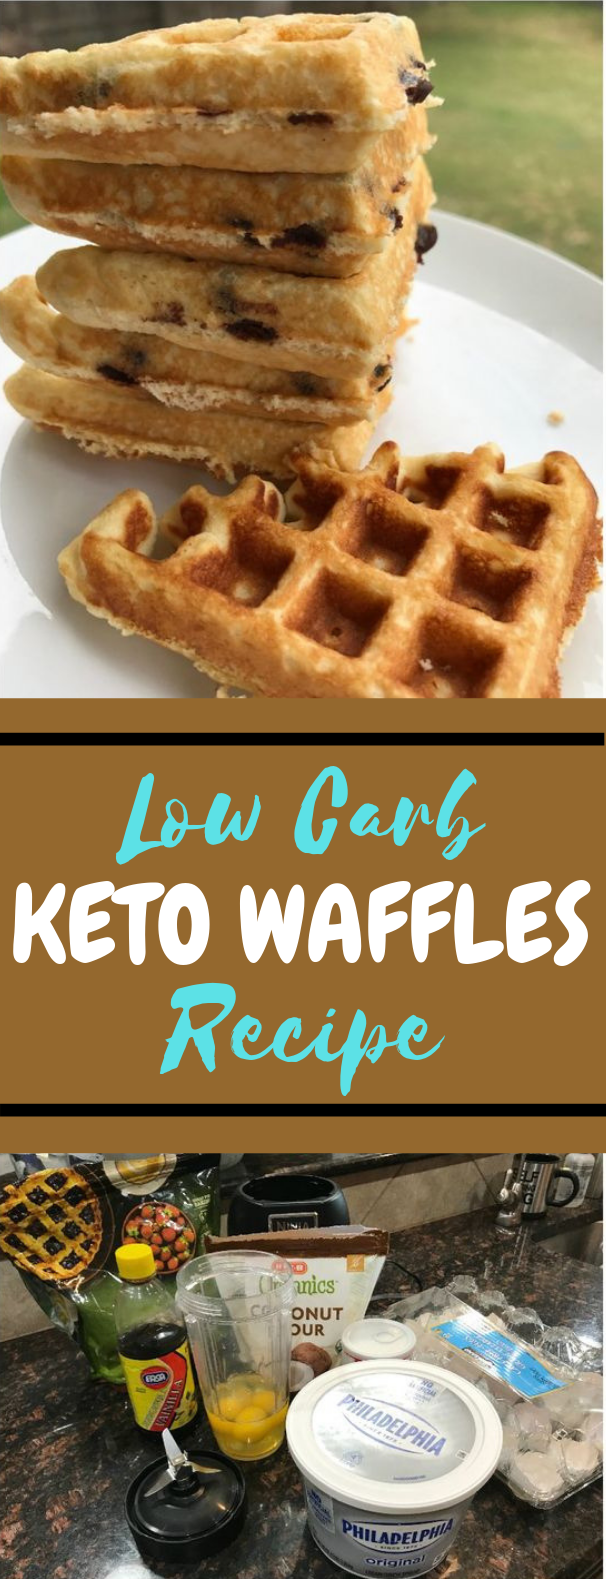 Low Carb and Keto Fluffy Waffles Recipe #Waffle #Keto